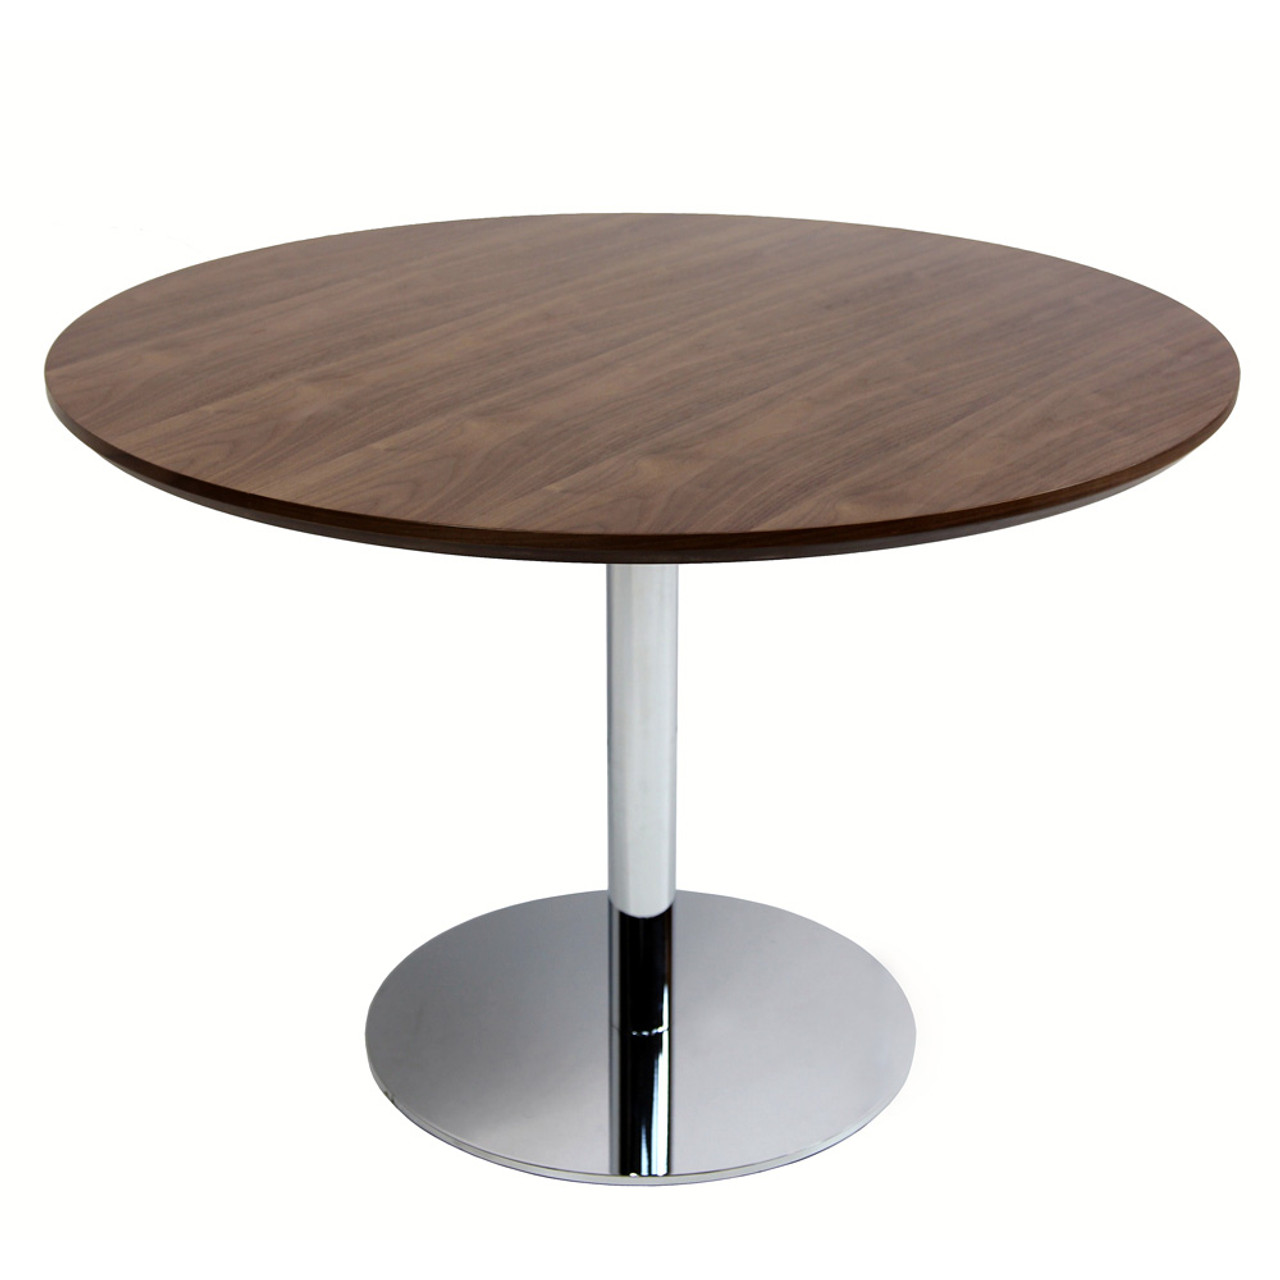 Tango Round Dining Table 43 With Walnut Table Top Zin Home